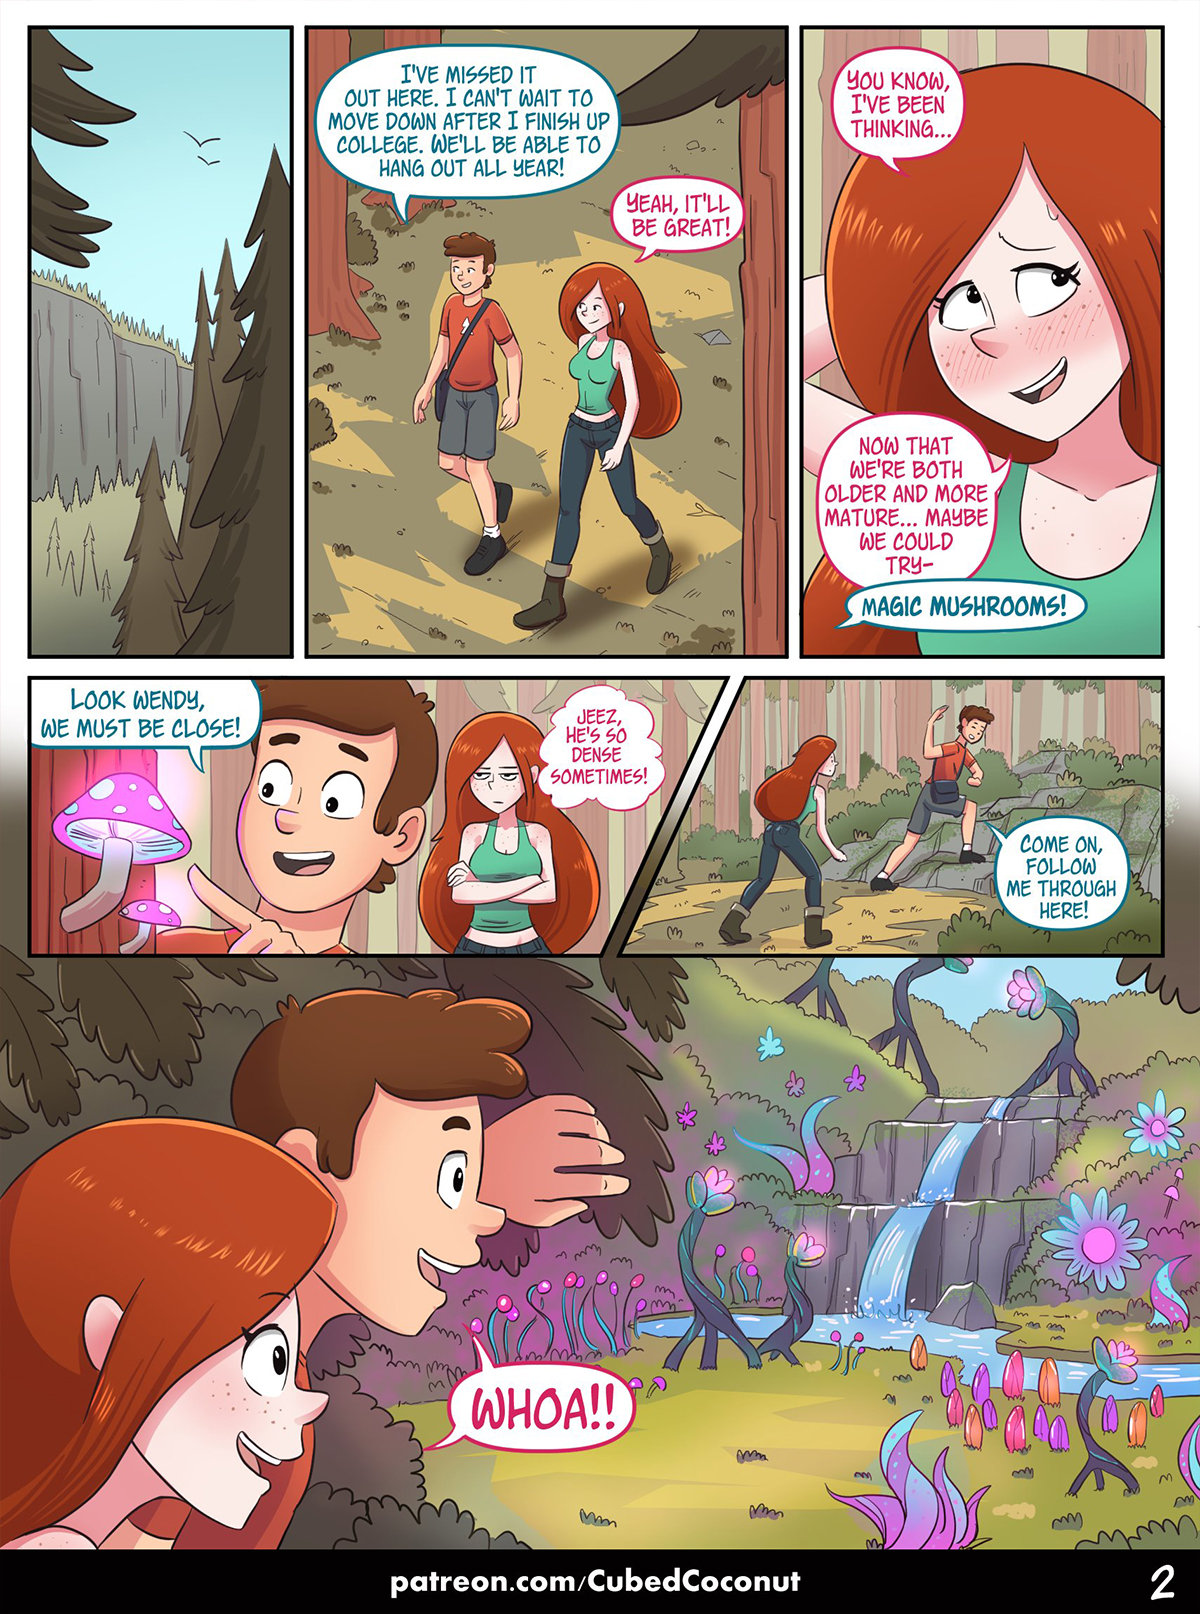 3 20 - WENDY'S CONFESSION- CUBED COCONUT (GRAVITY FALLS).